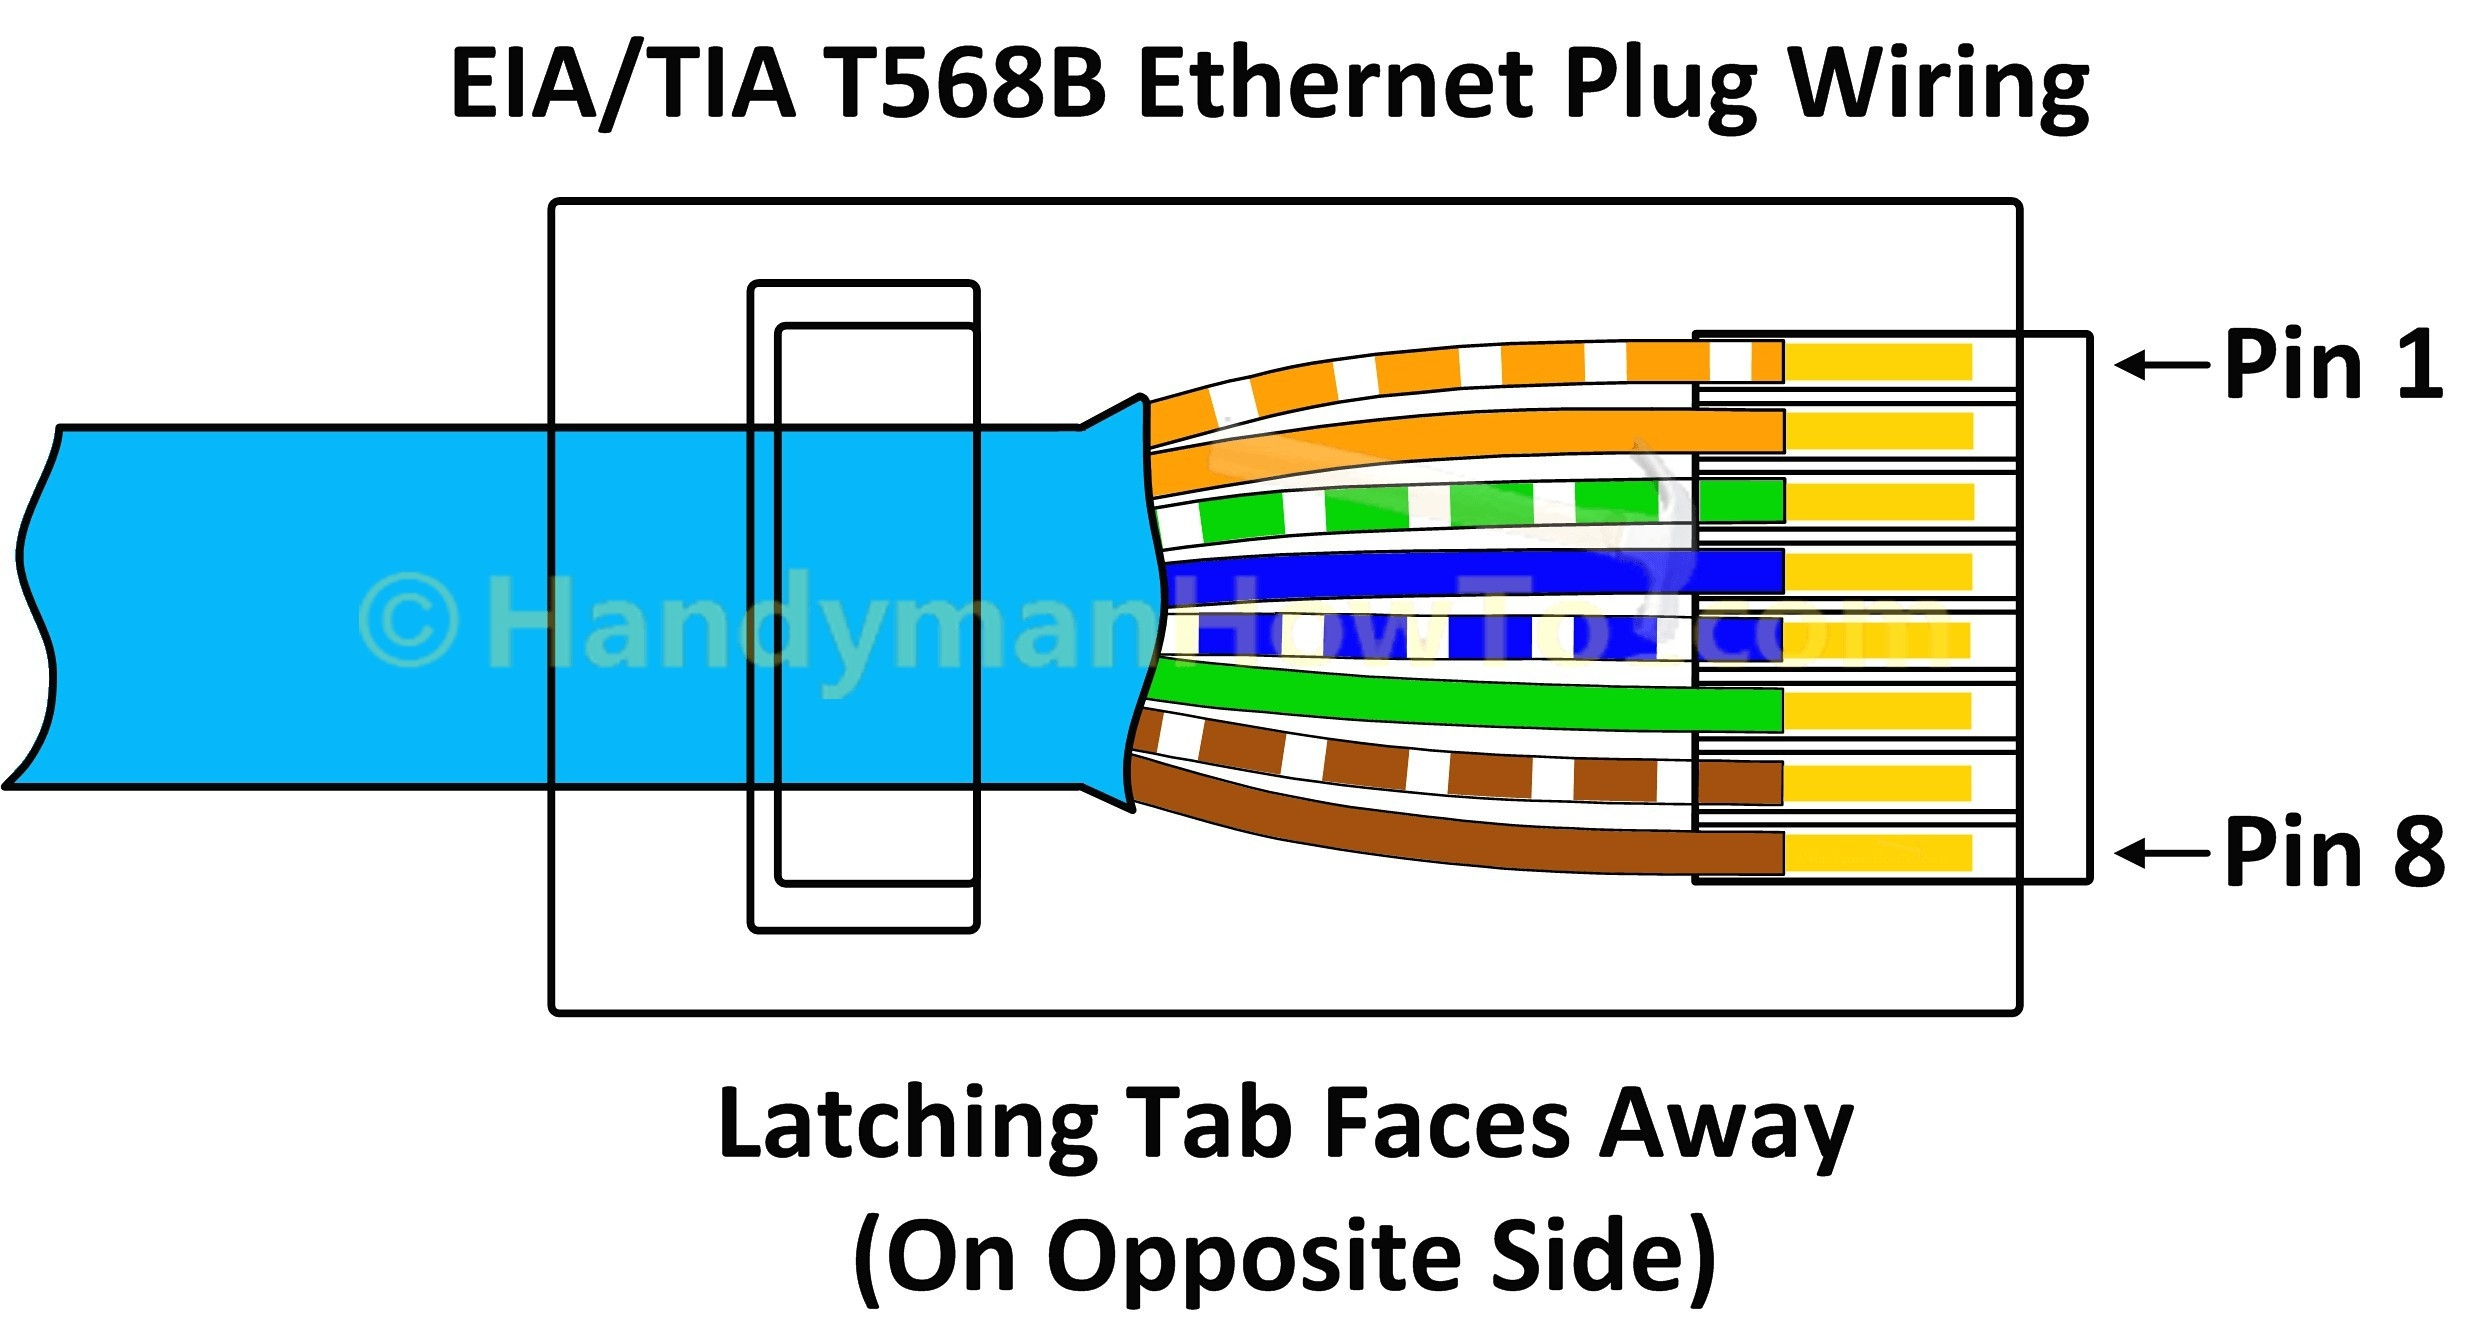 cat5 cctv wiring diagram Download-cat5e crossover cable wiring diagram Collection Wiring Diagram For Cat5 Crossover Cable New Cat5 B 17-e